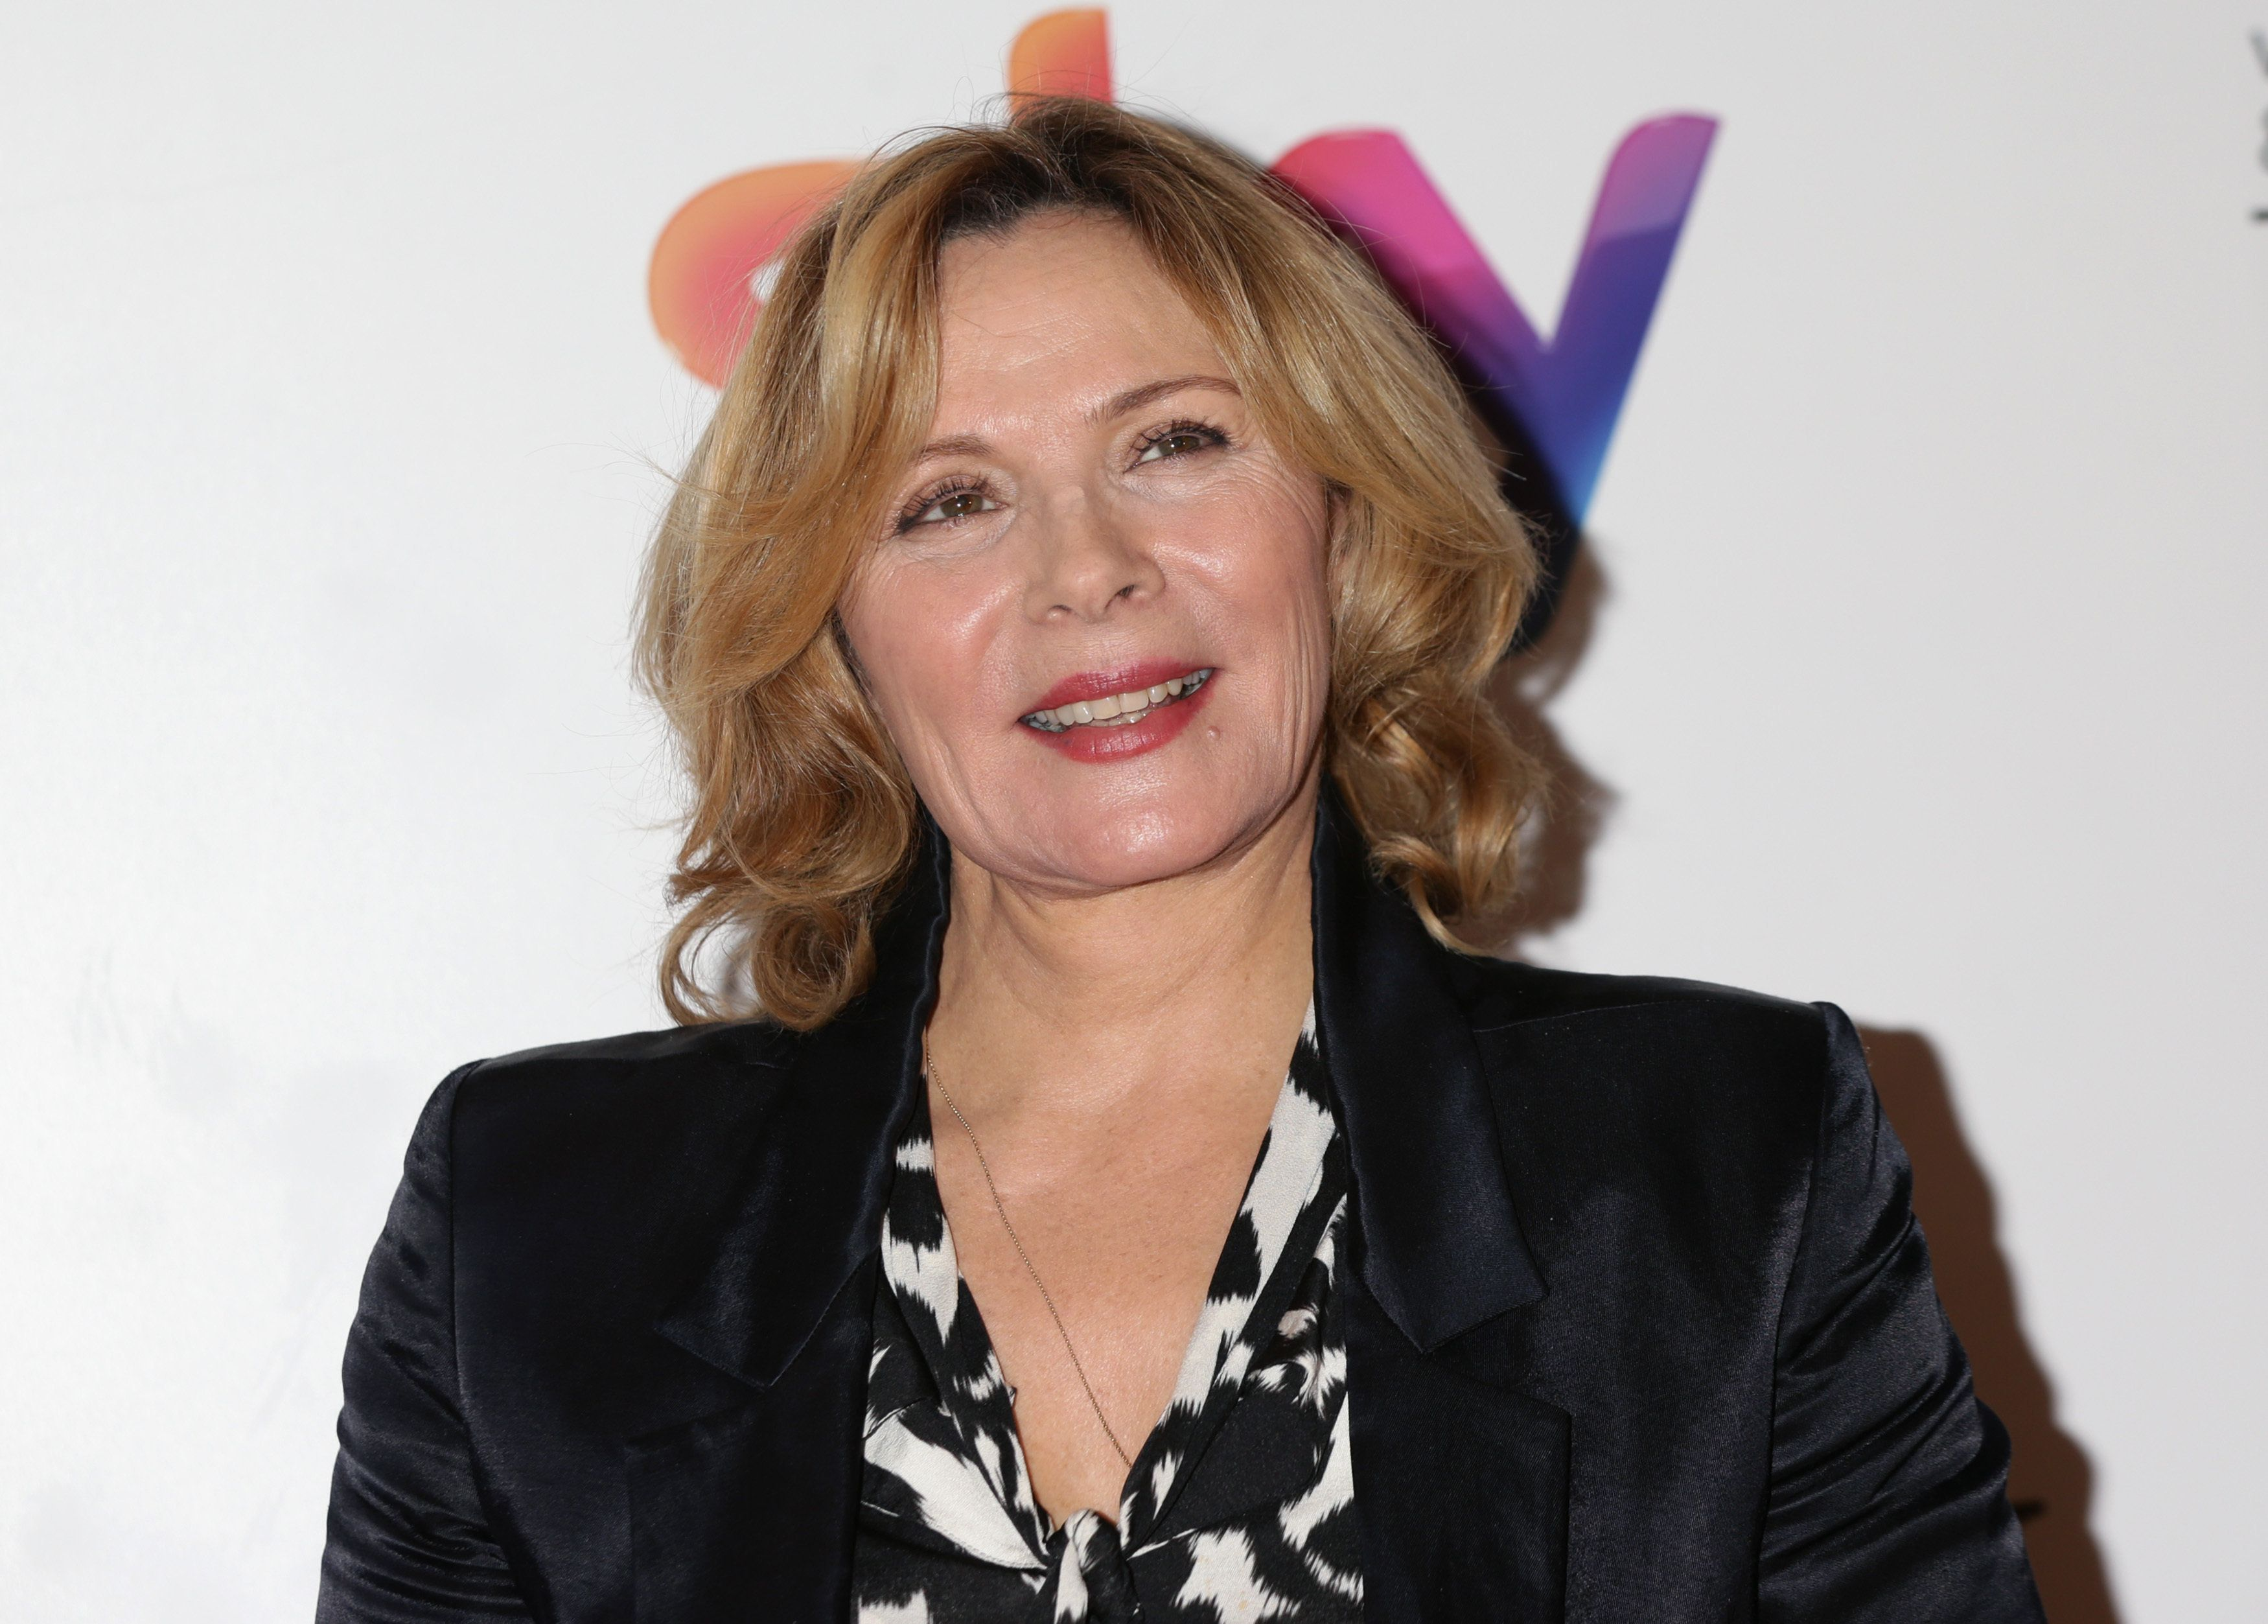 Kim Cattrall arrives at the Women in Film & TV Awards at the London Hilton Park Lane hotel in London. (Photo by Yui Mok/PA Images via Getty Images)